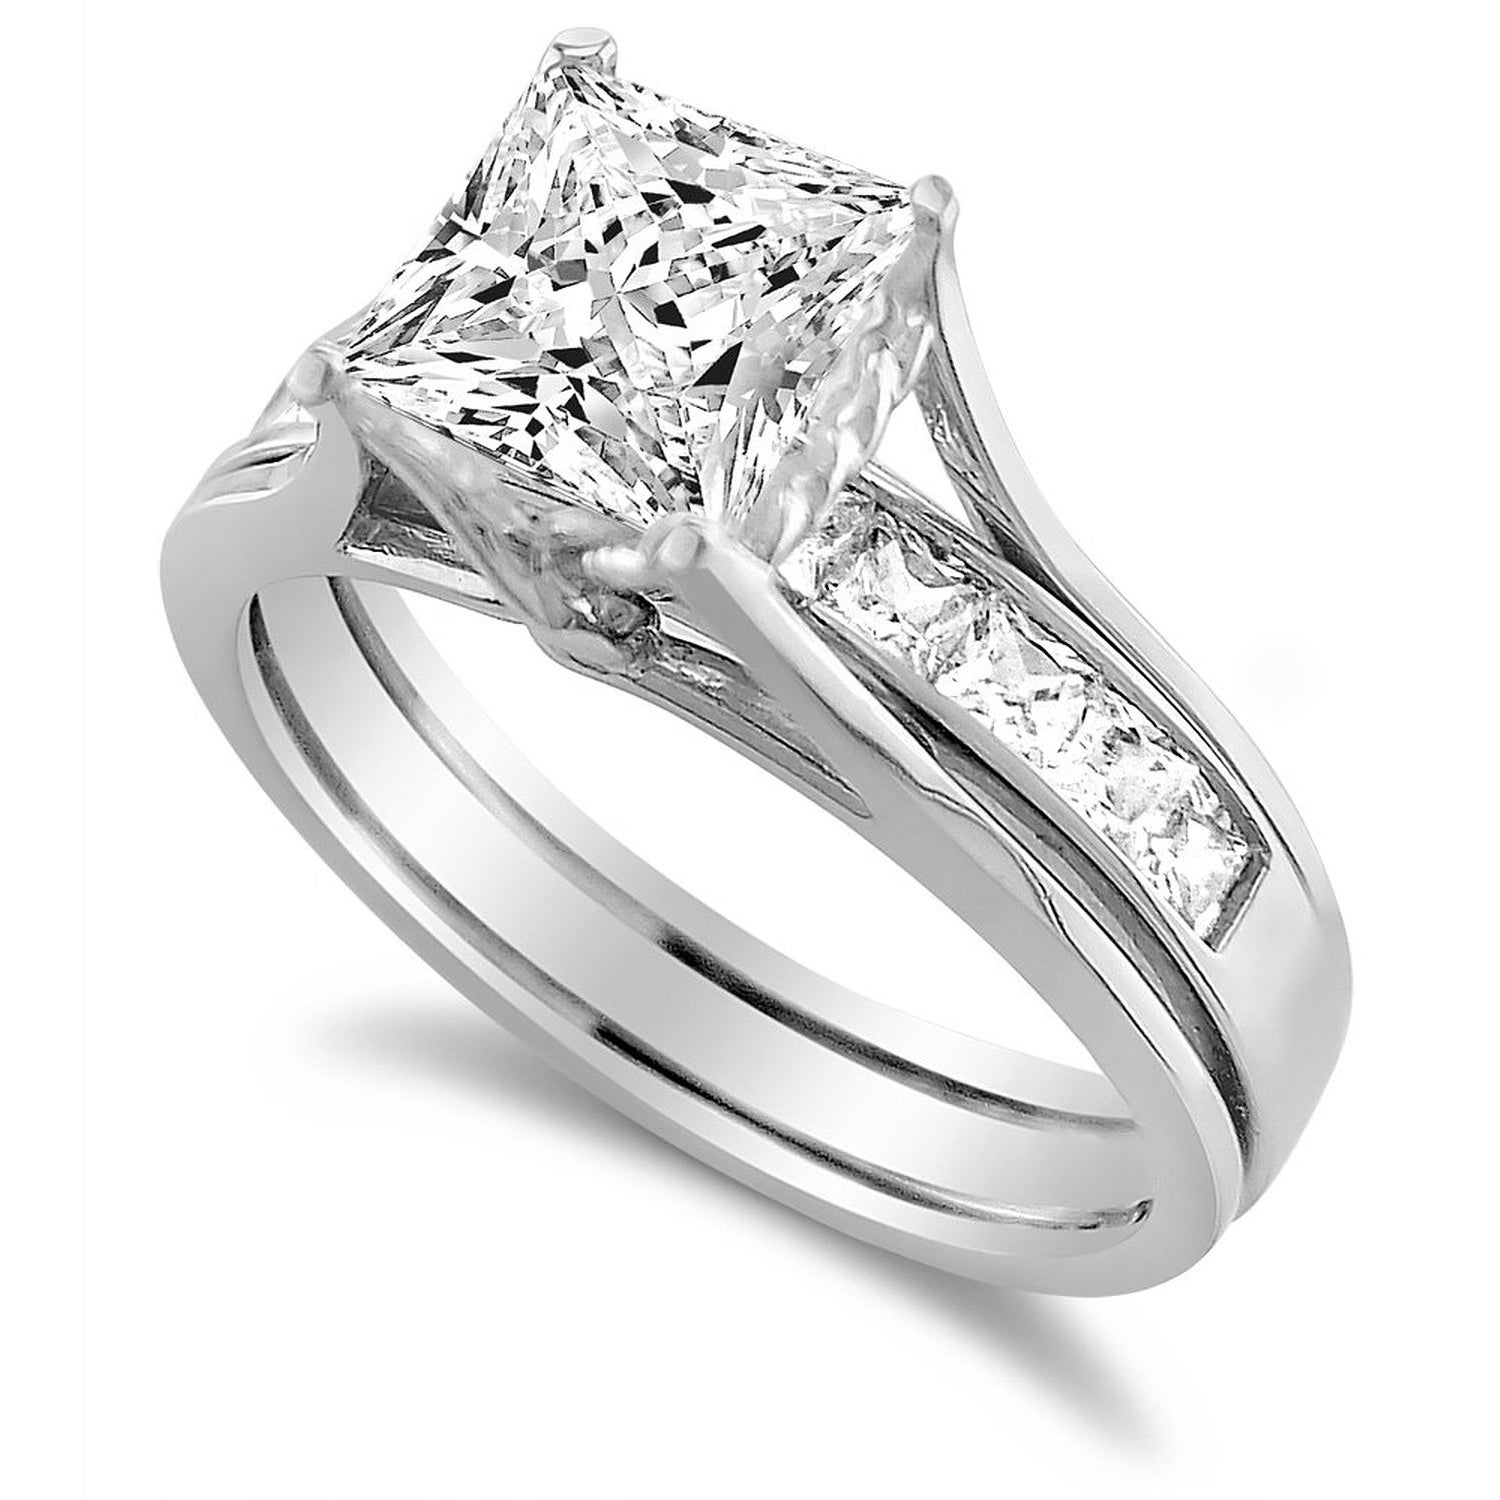 This is a graphic of 4444K White Gold 4444 4444/44 CT Princess-Cut Cubic Zirconia Insert Bridal Ring Set